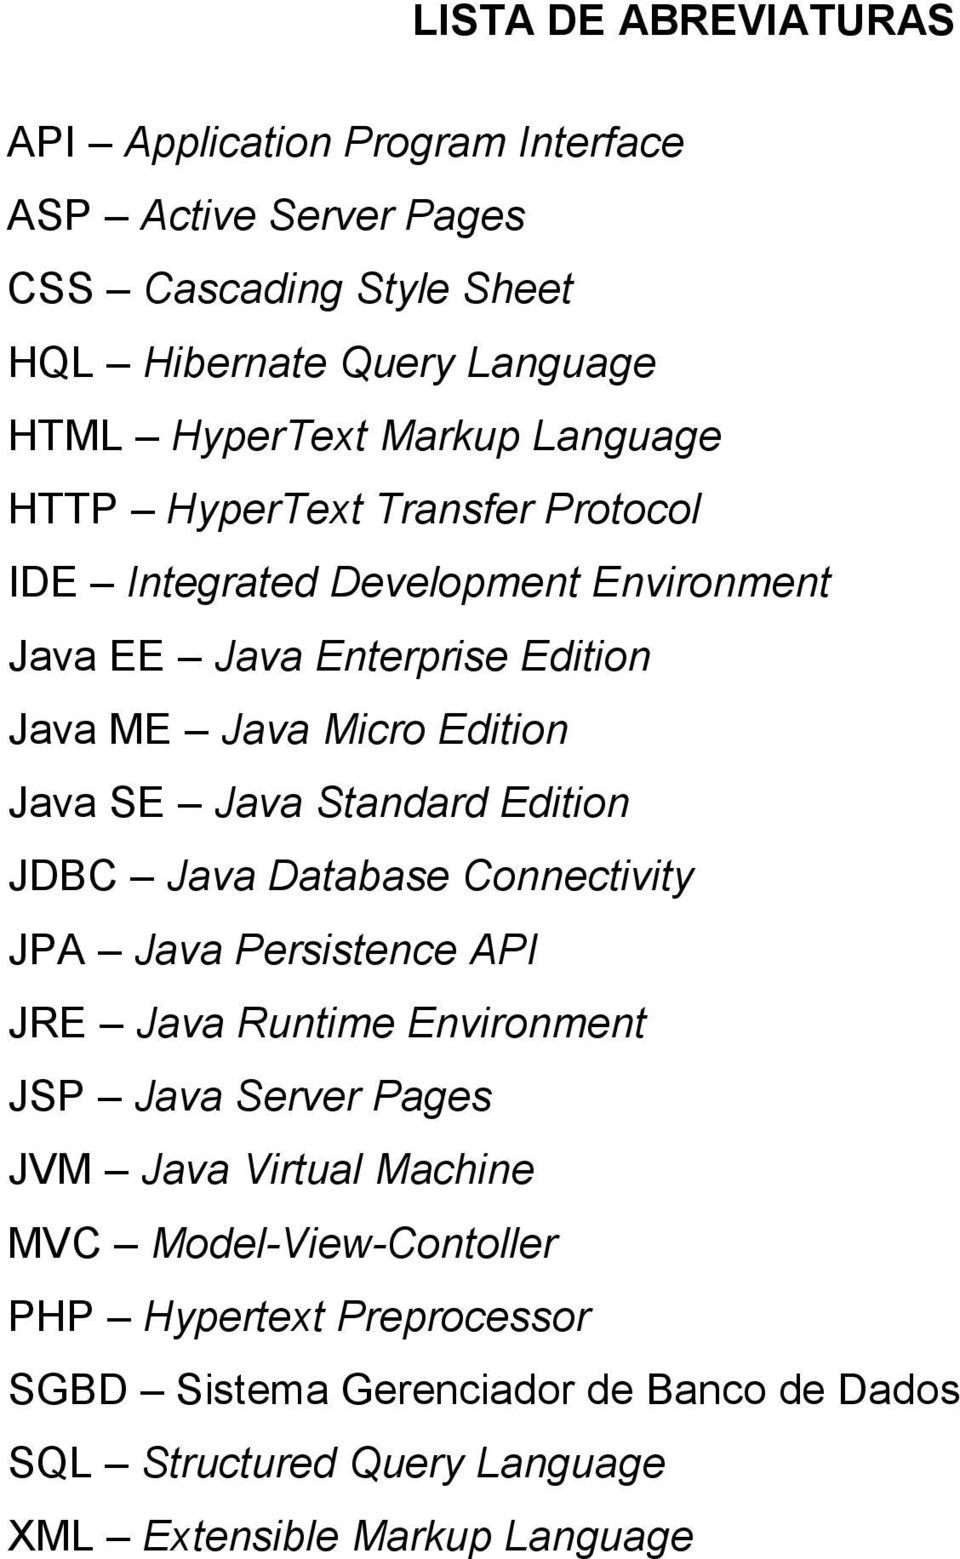 SE Java Standard Edition JDBC Java Database Connectivity JPA Java Persistence API JRE Java Runtime Environment JSP Java Server Pages JVM Java Virtual